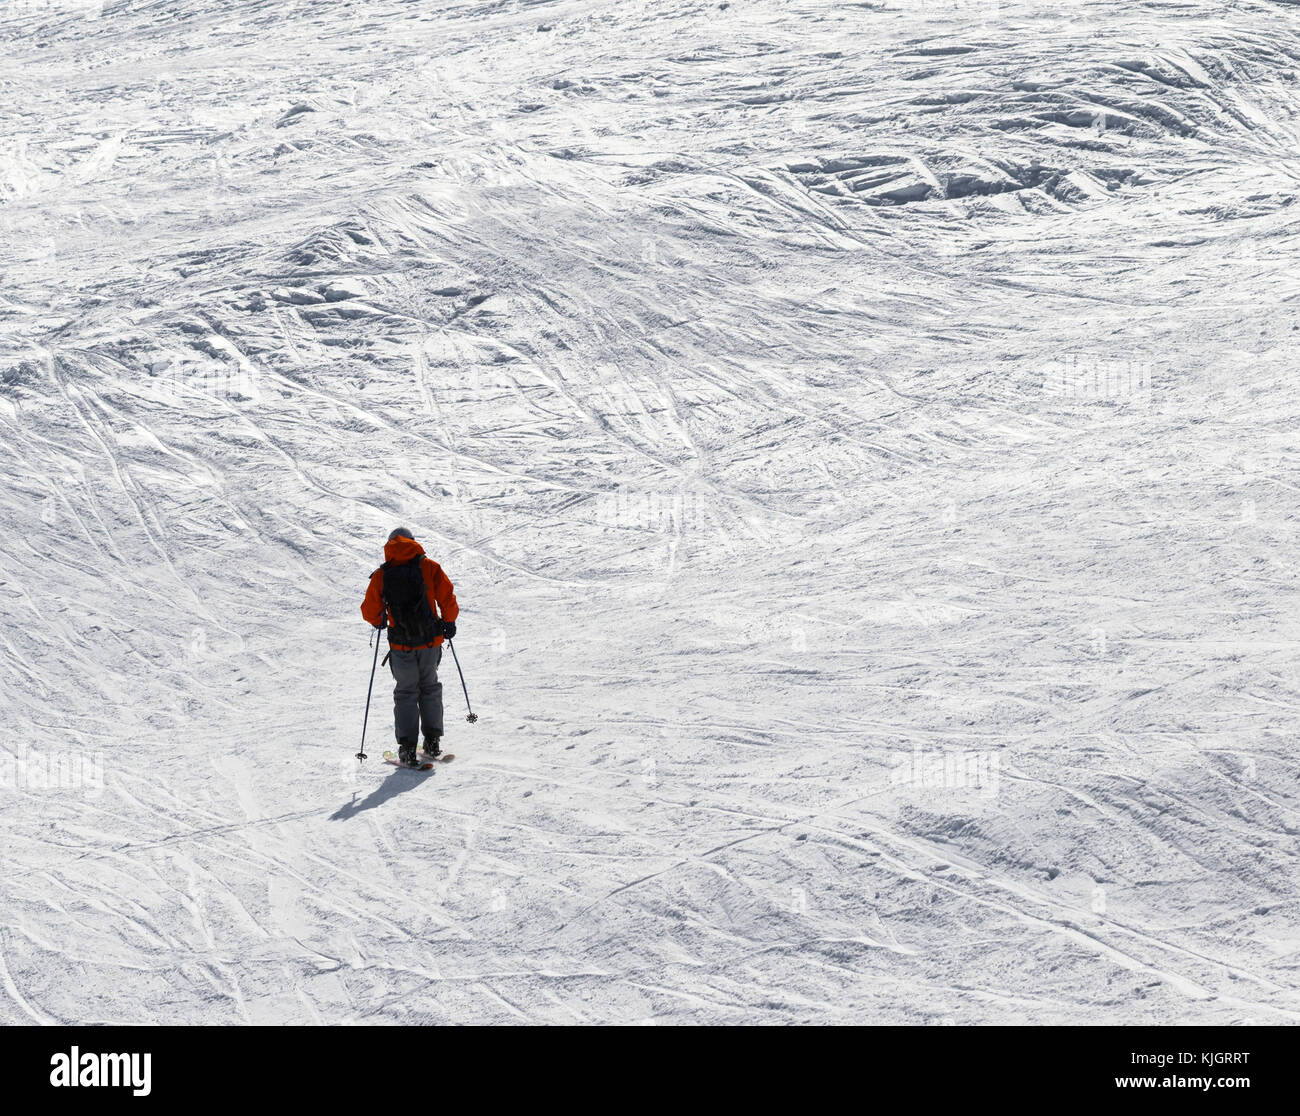 Skier downhill on snowy off-piste slope in sun winter day - Stock Image